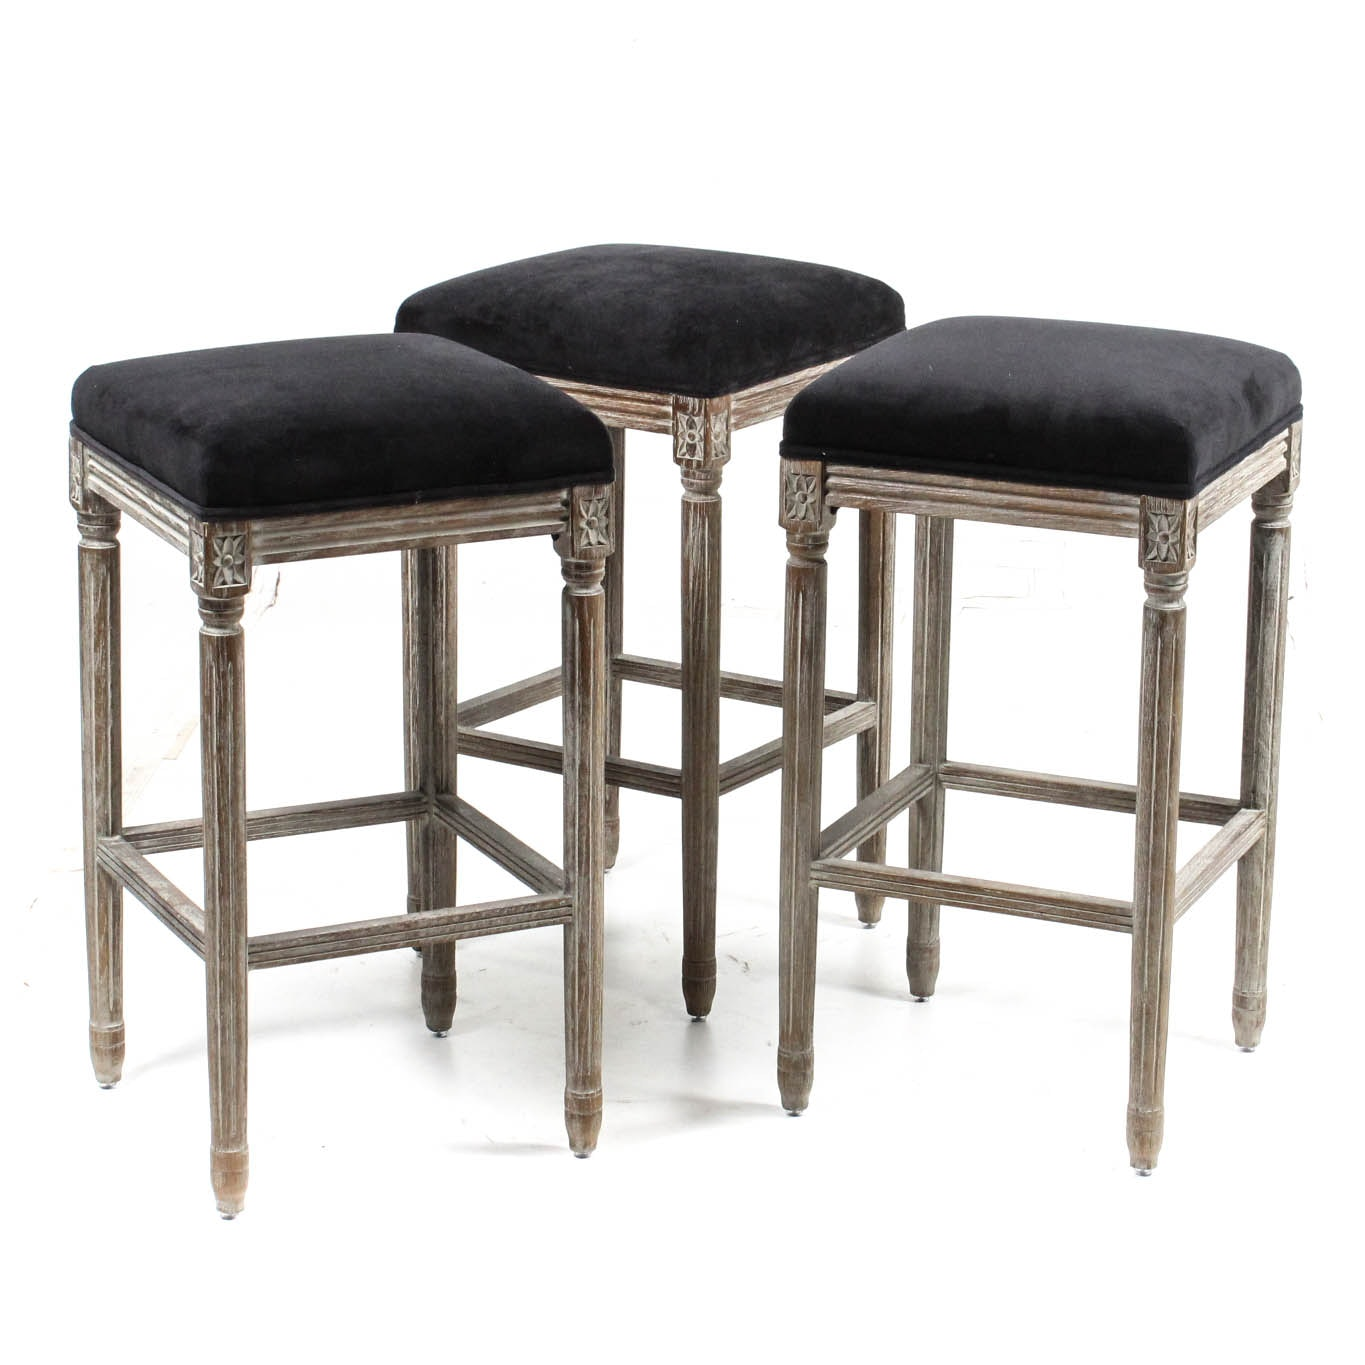 Linon Home Decor Barstools